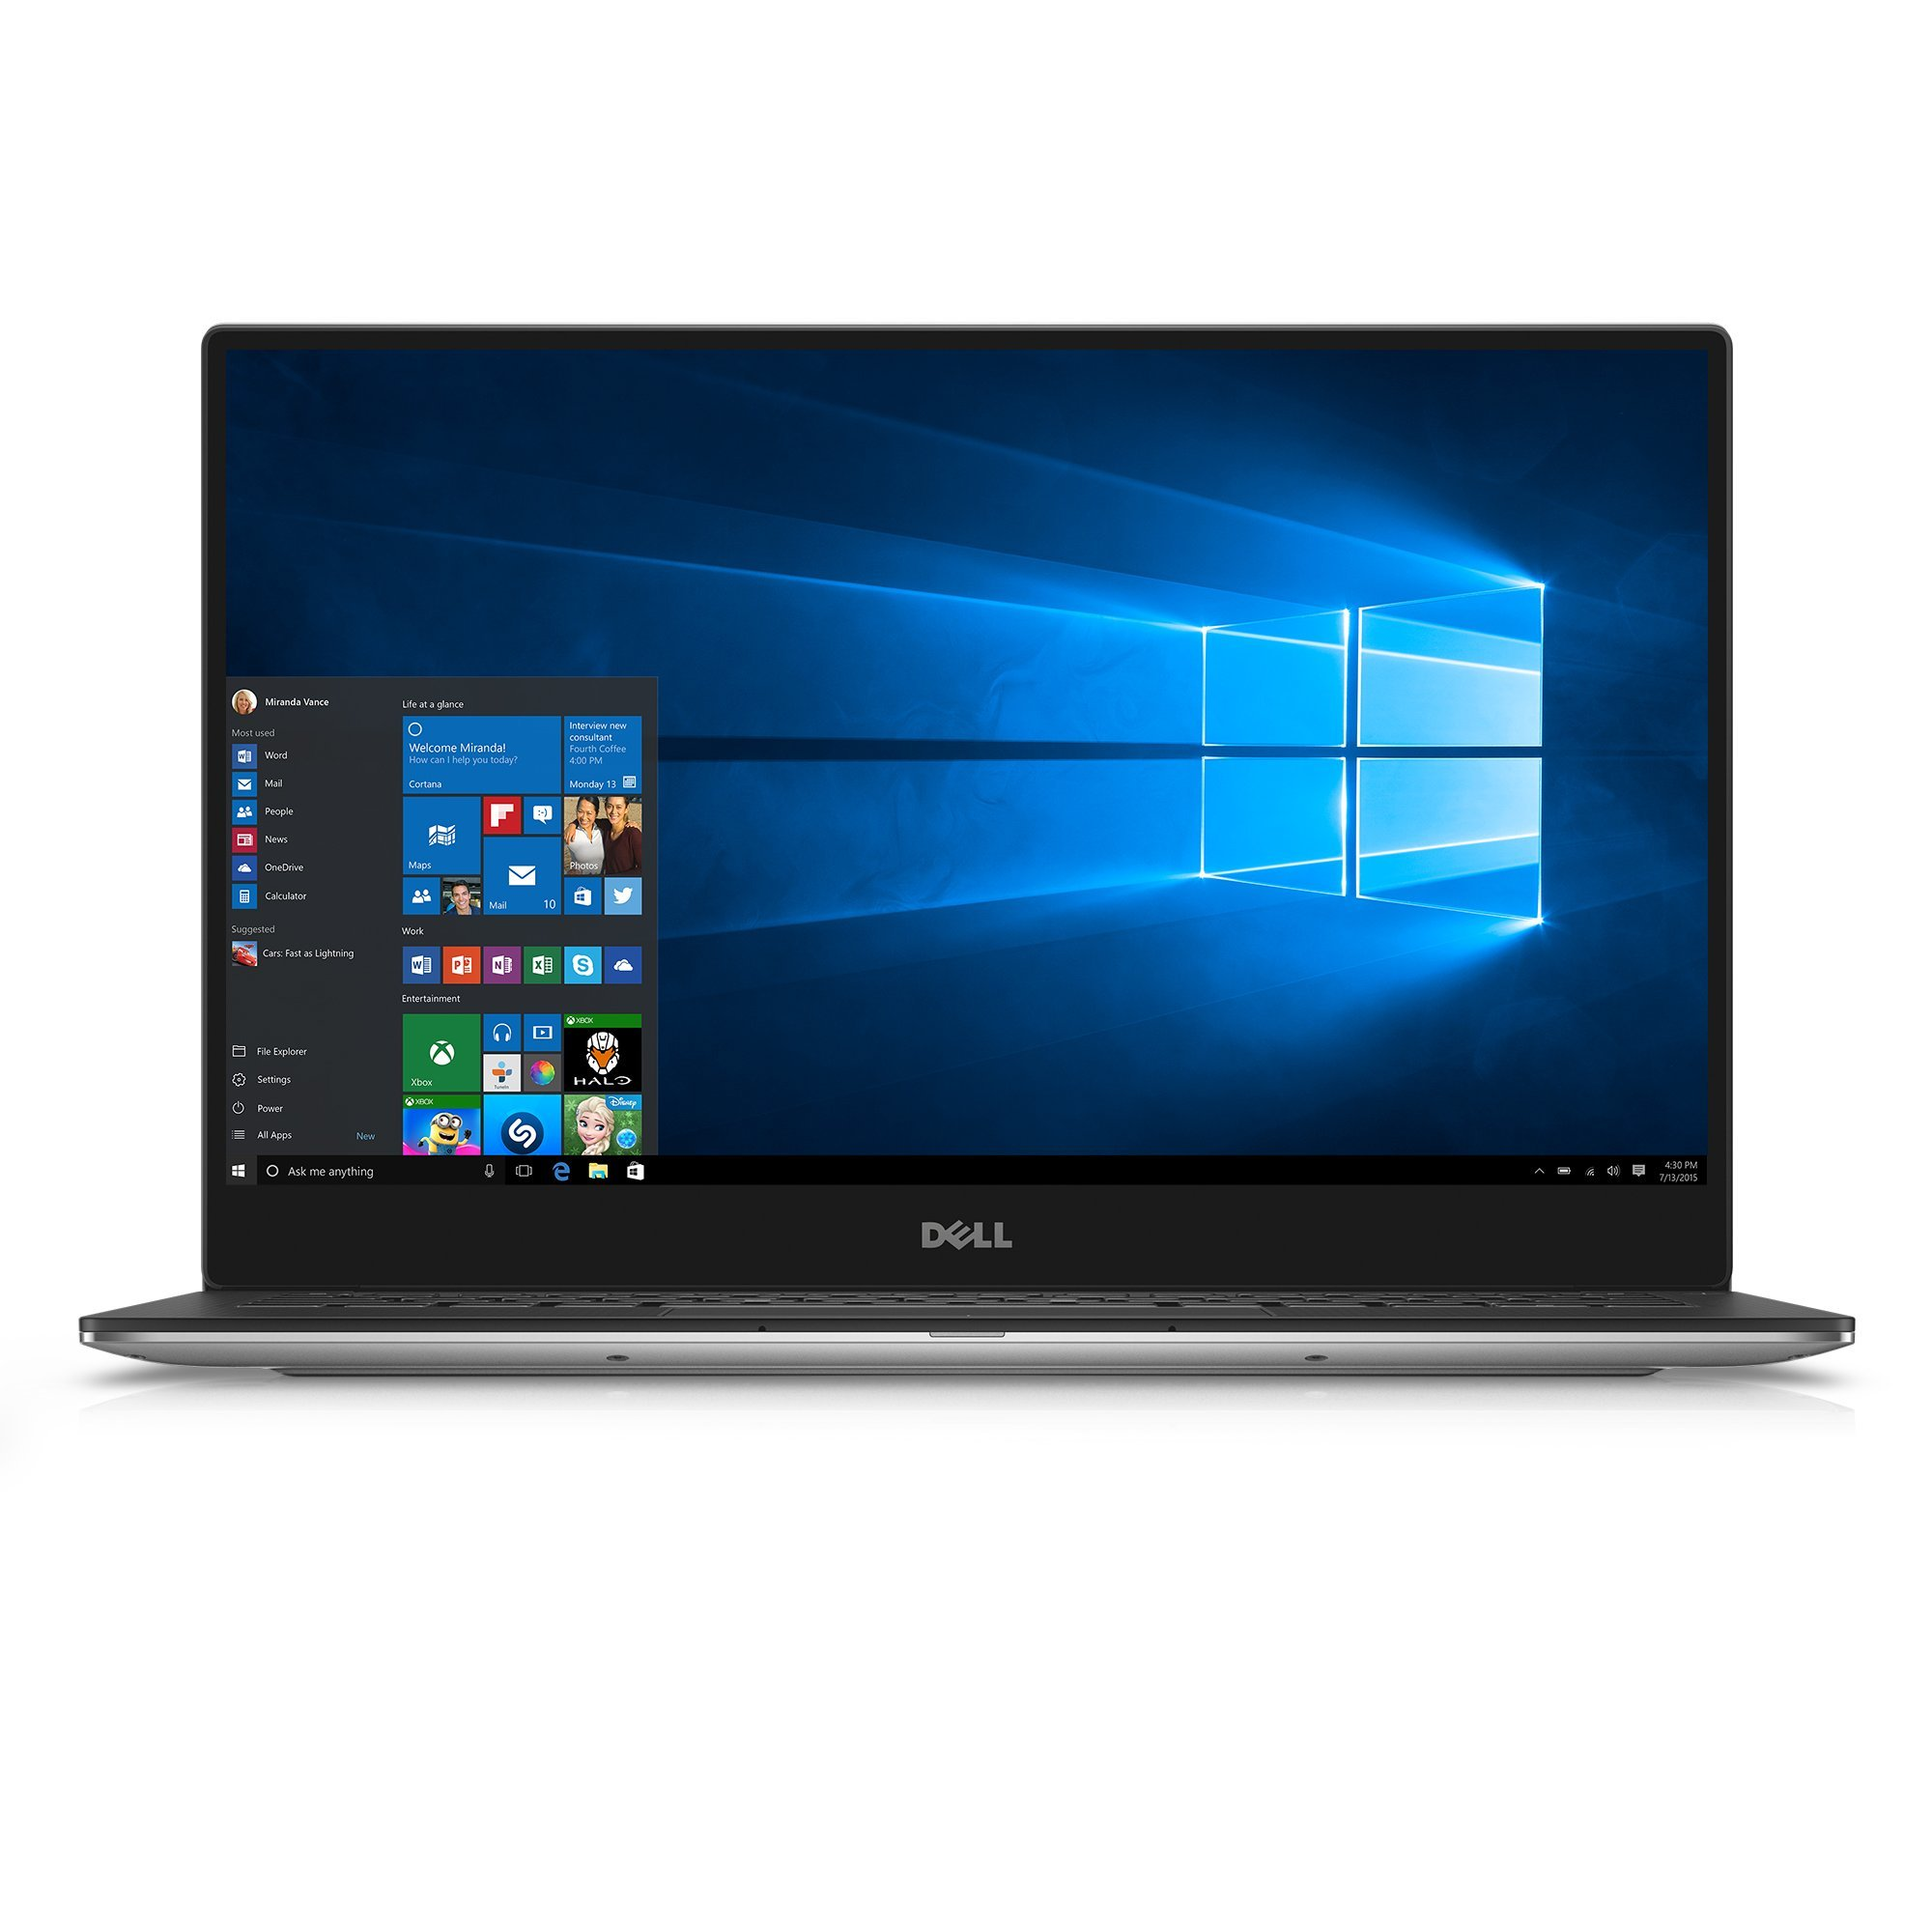 Dell XPS M140 350 Intel ProWireless Driver for Windows Download